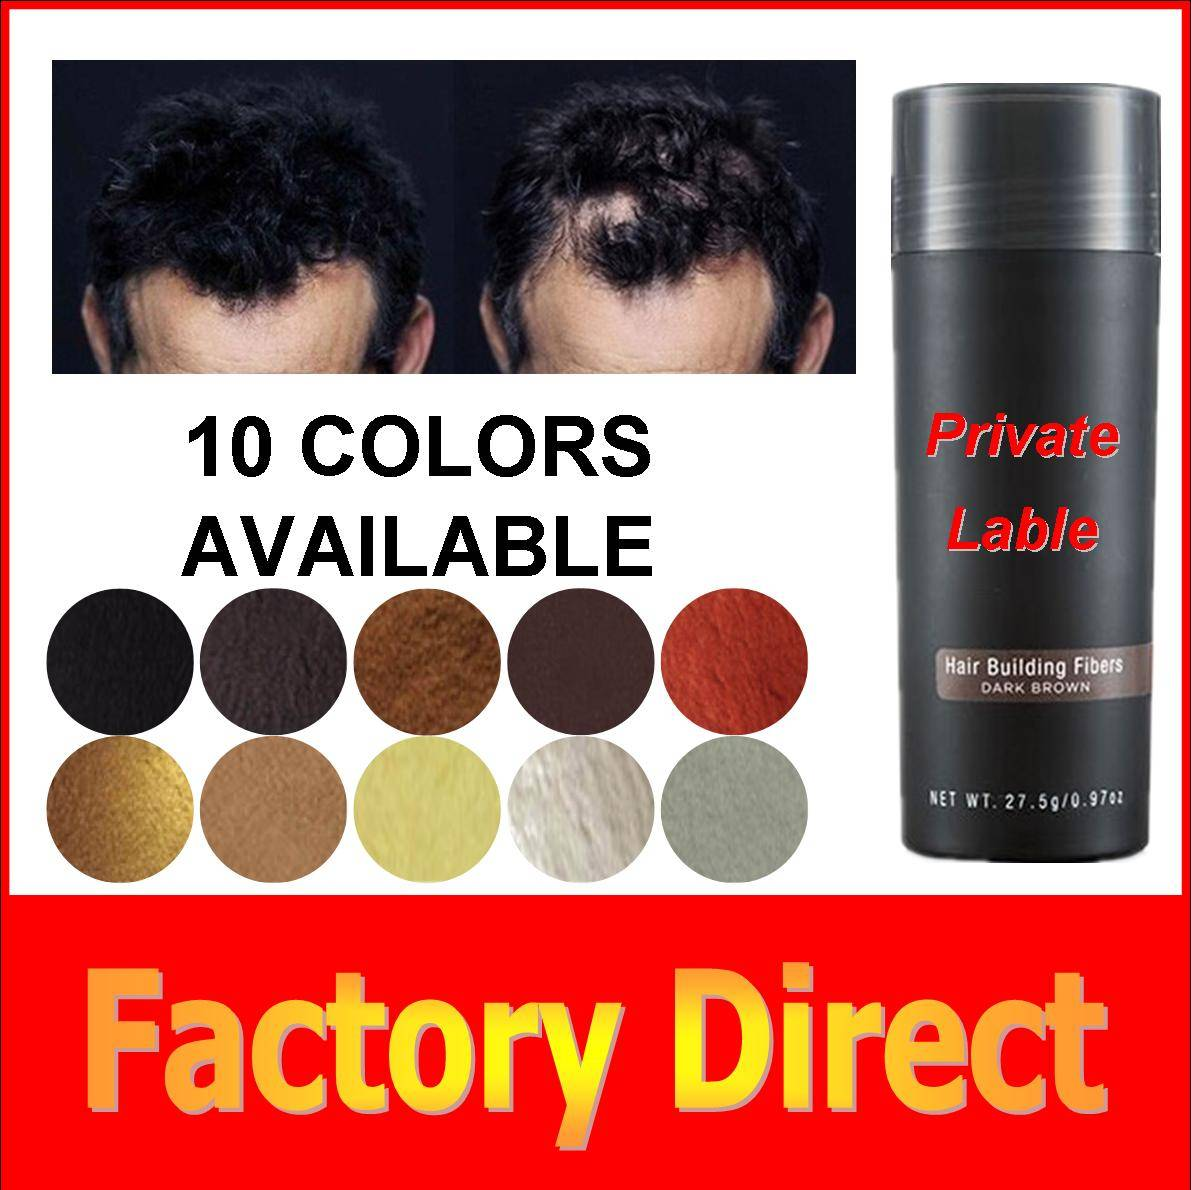 Wholesale Instant Keratin Hair Building Fibers 25g/27.5 hair regrowth products